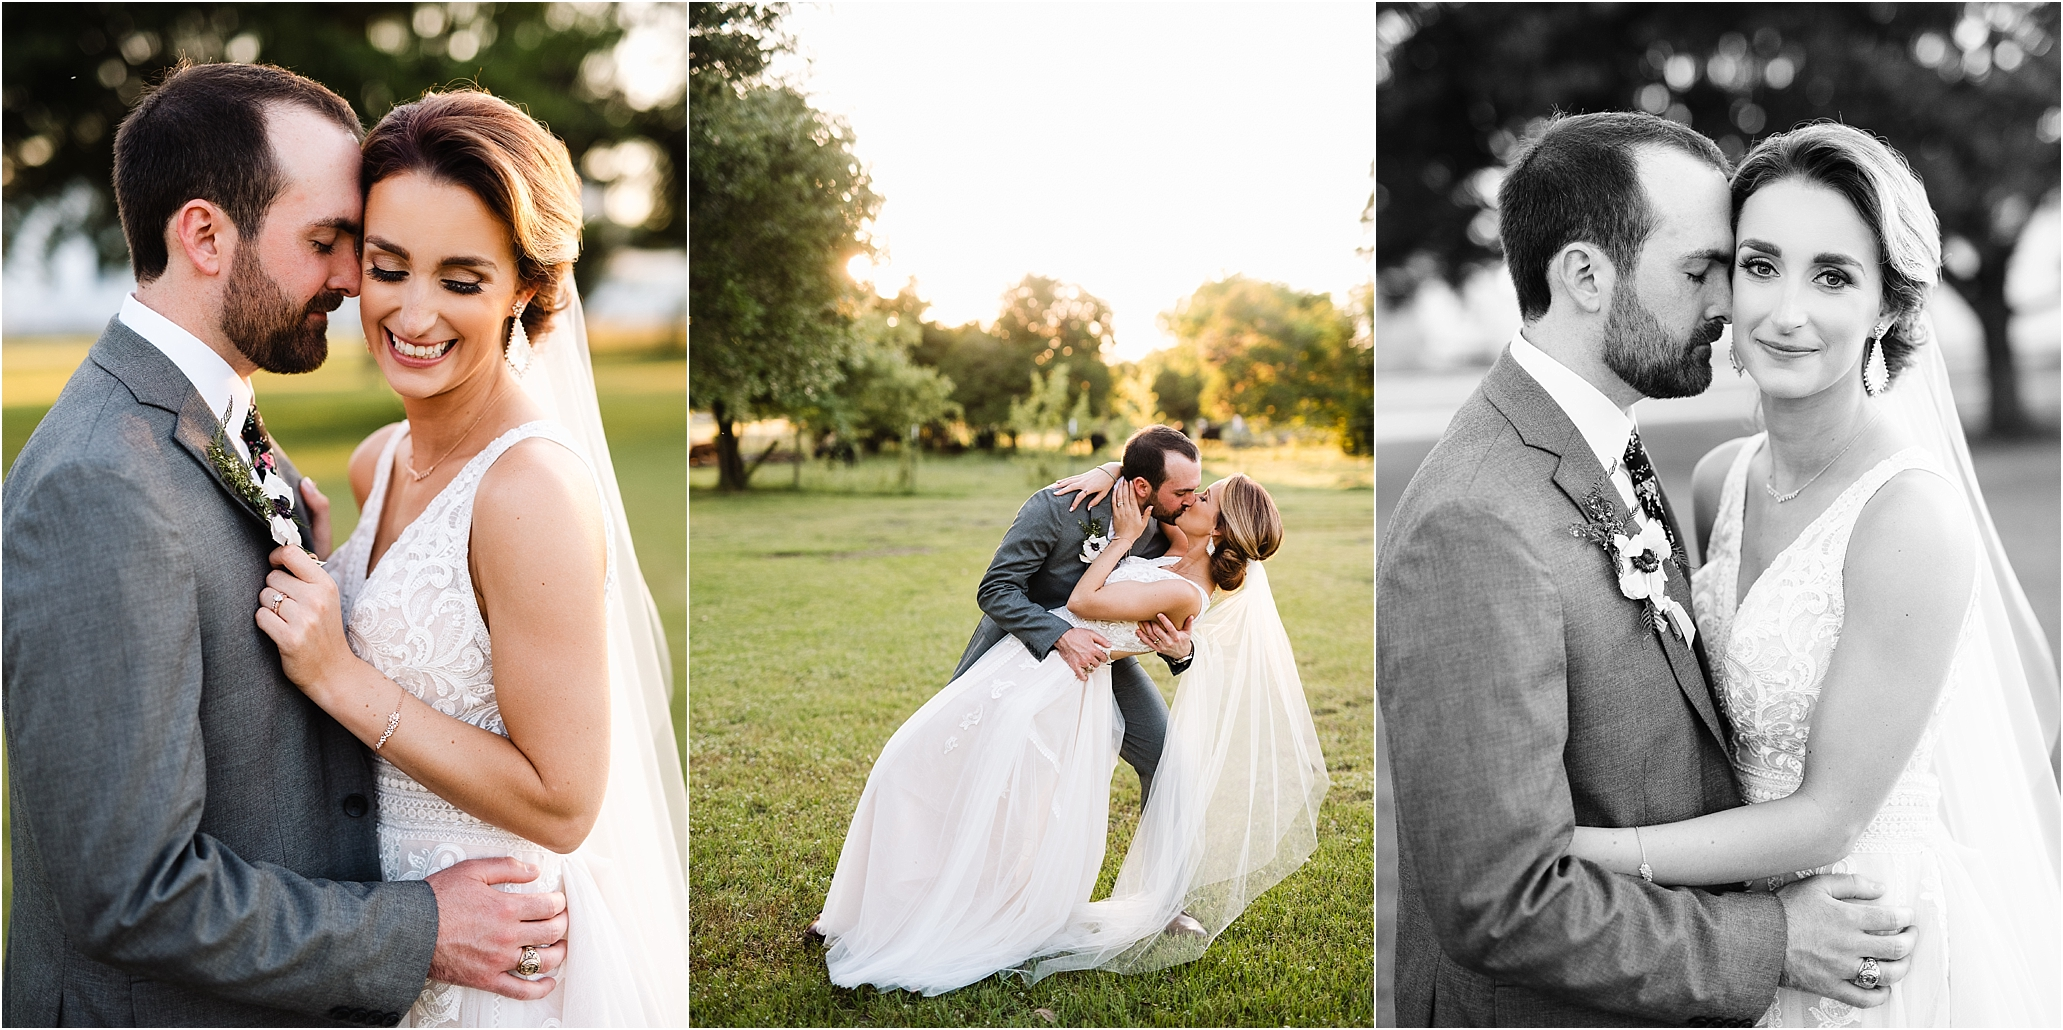 PattisonHouse_TexasWeddingPhotographer_CarlyCrockett&MattBrownWedding_0076.jpg